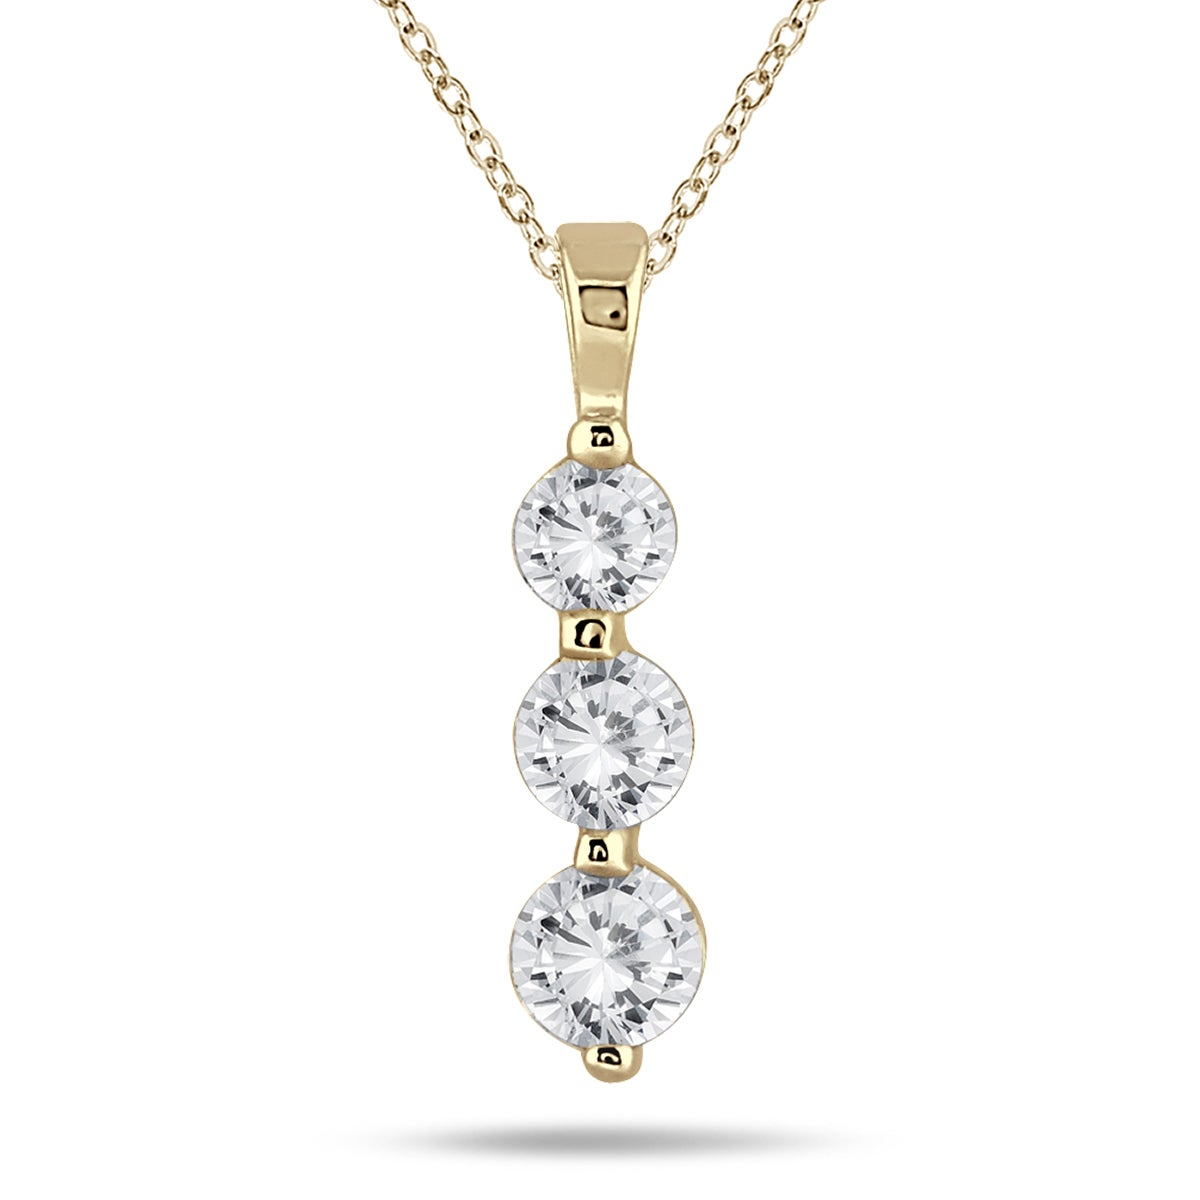 diamond j necklace i pendant today product watches marquee overstock gold tdw yellow jewels shipping graduated free jewelry stone